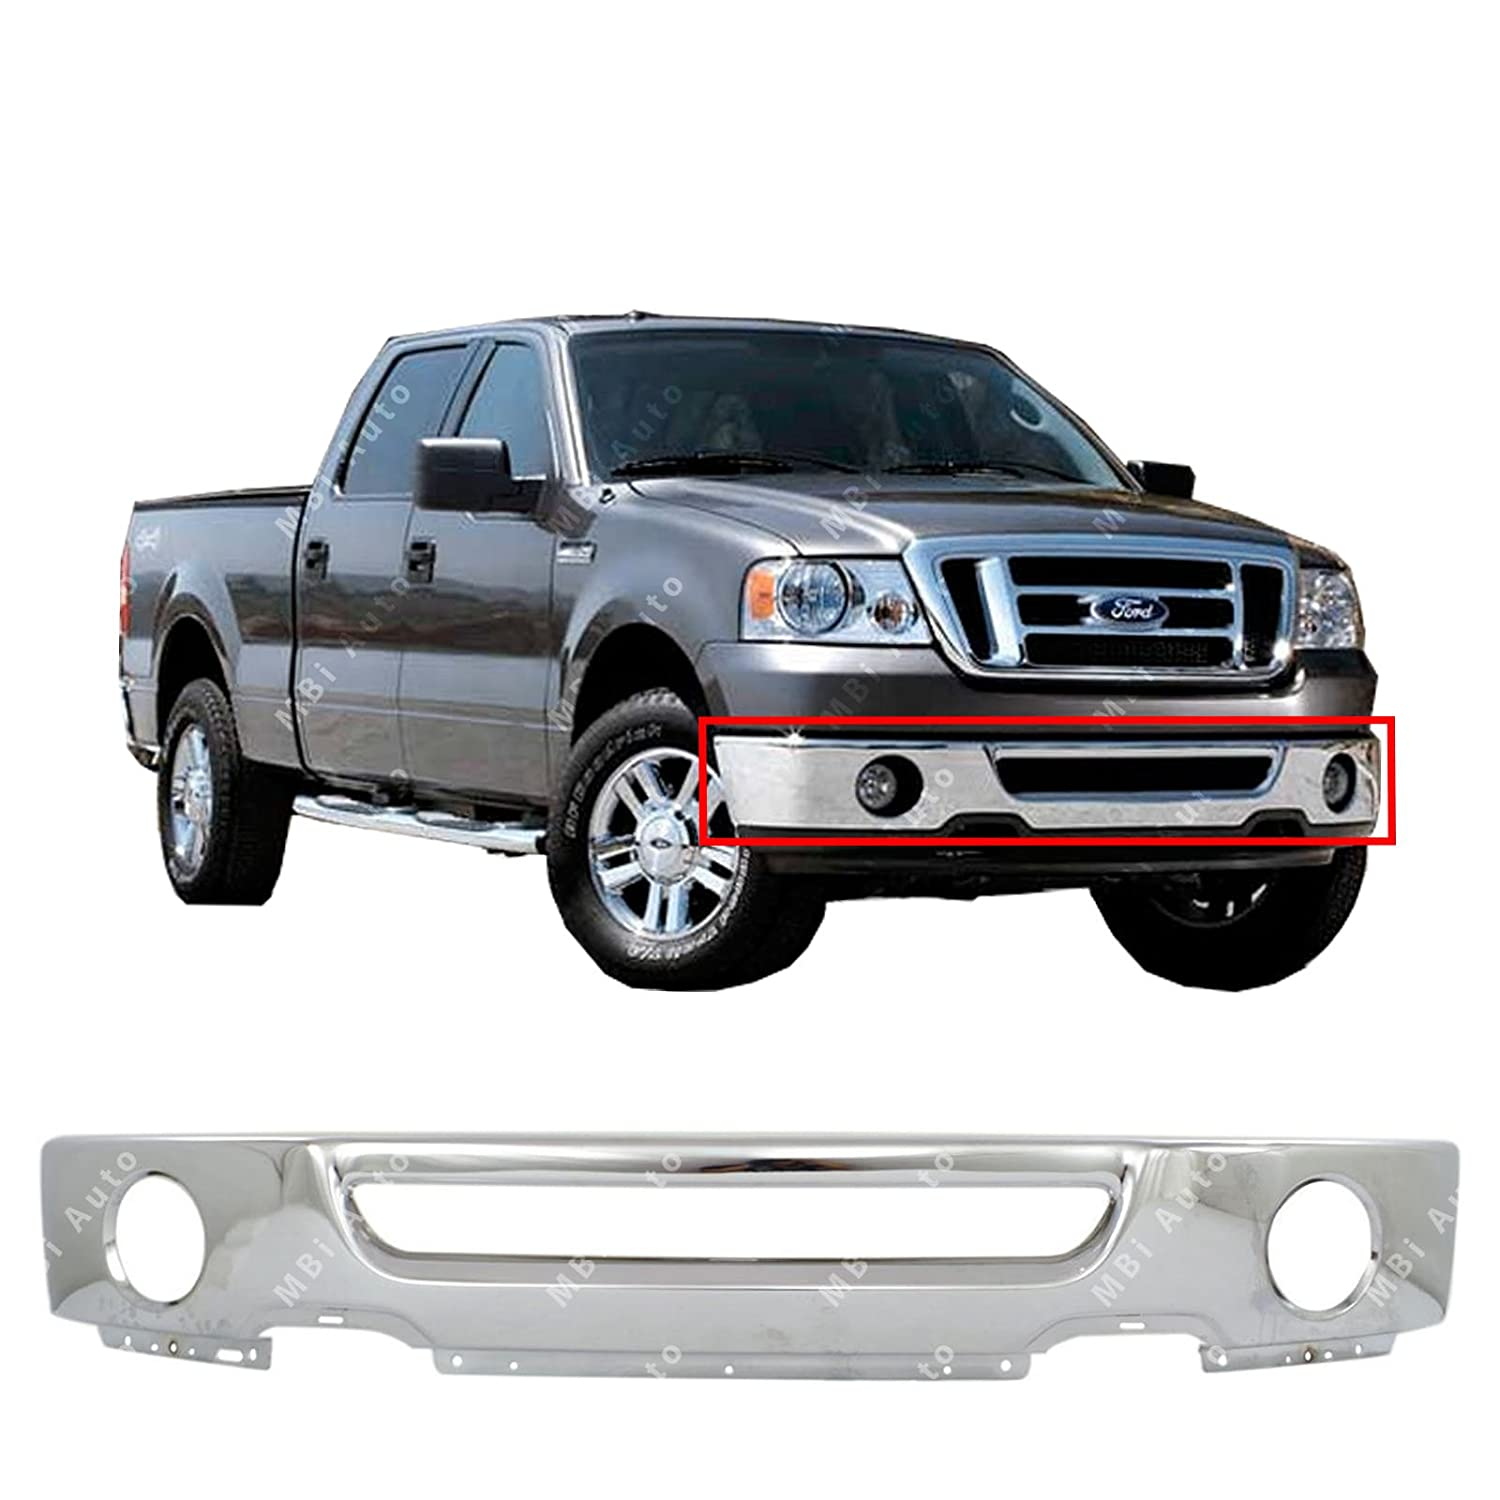 Mbi Auto Chrome Steel Front Bumper Face Bar For 2006 2007 2008 Ford F150 Pickup Wfog Light Holes 06 08 Fo1002399